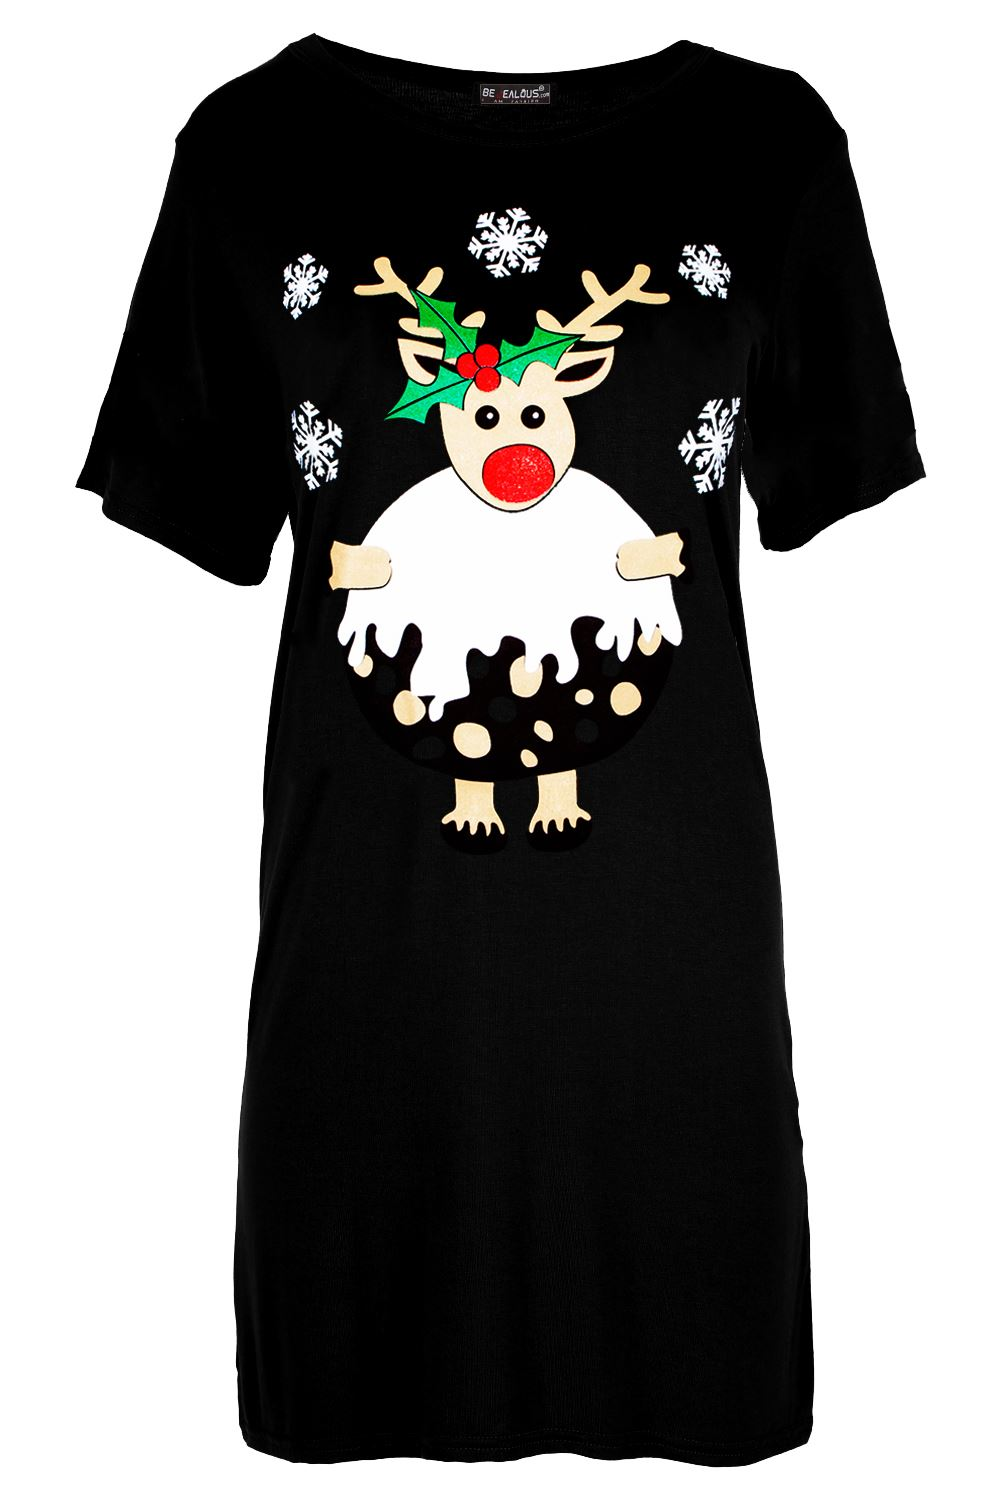 New-Womens-Ladies-Christmas-Gingerbread-Hat-Candy-Baggy-Oversized-T-Shirt-Dress